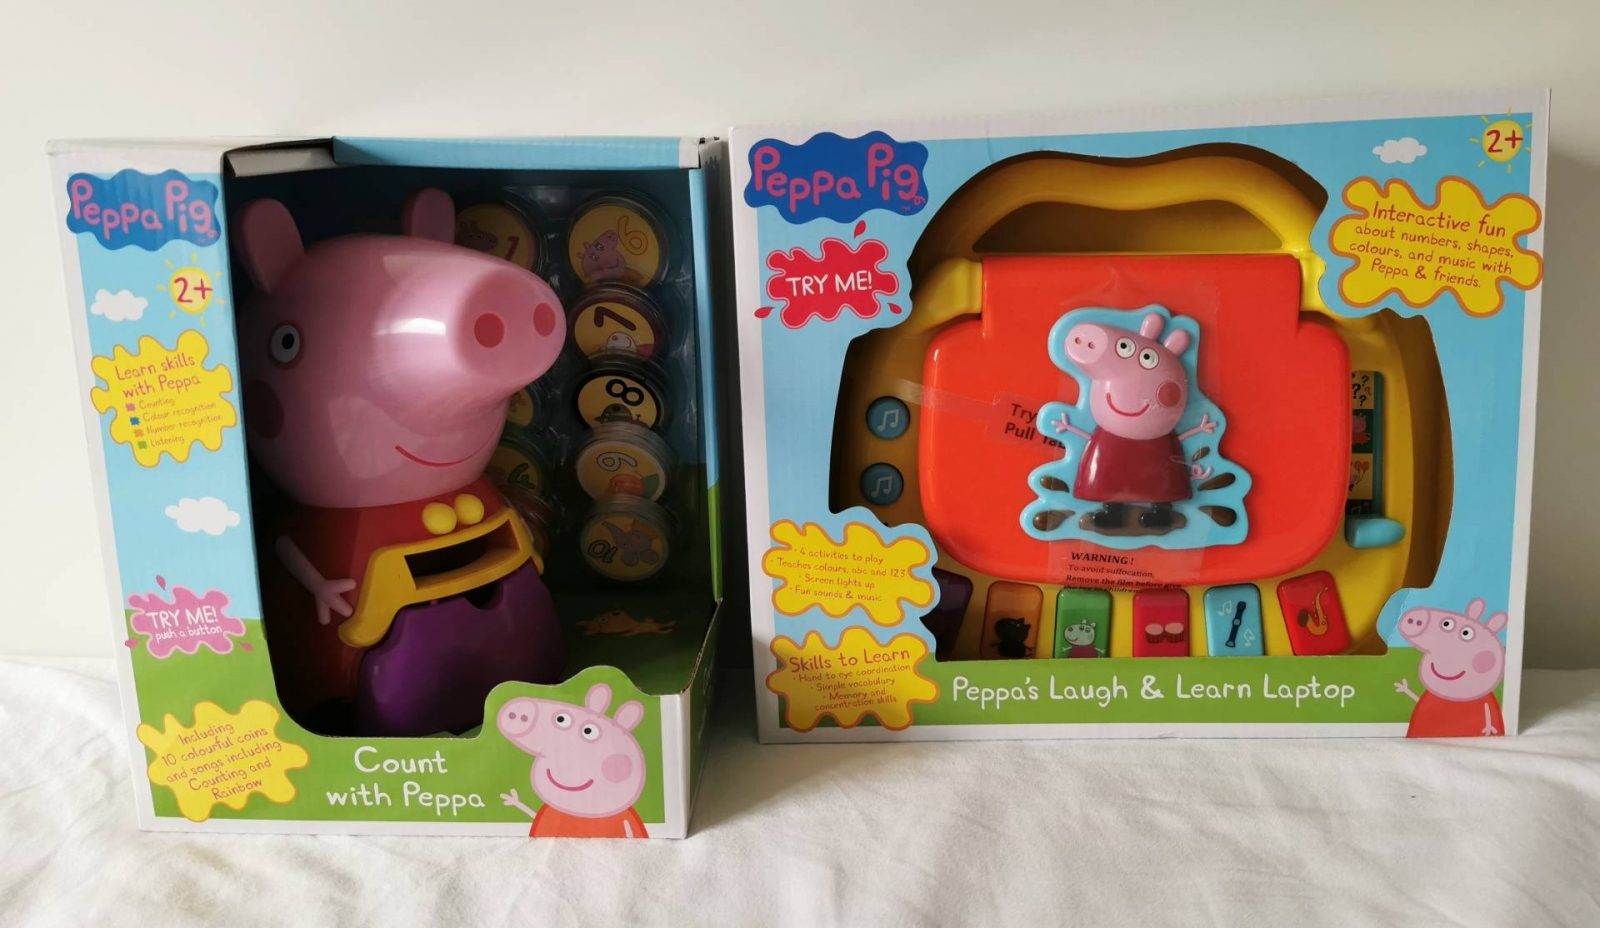 Peppa Pig Laugh & Learn Laptop and Peppa Pig Count with Peppa Review & Giveaway